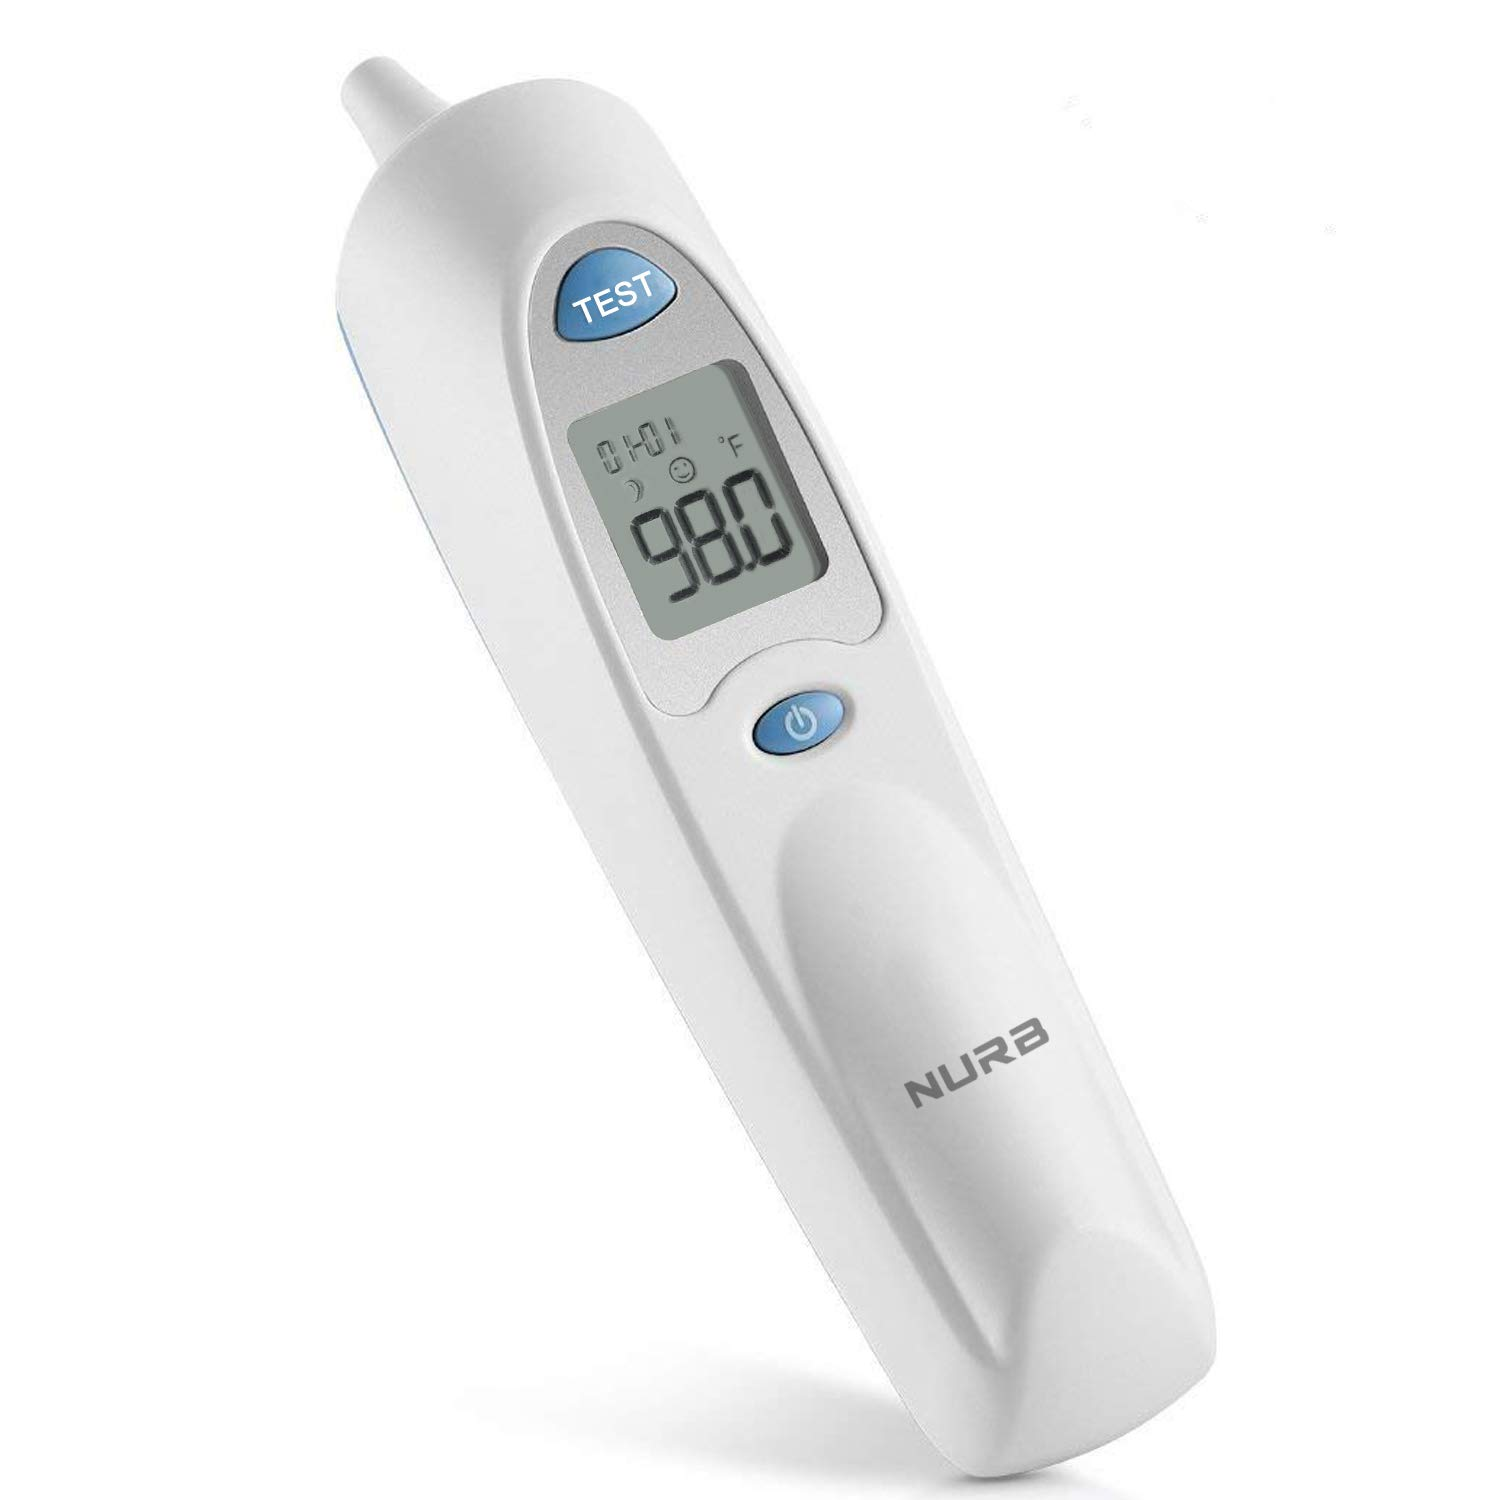 Digital Thermometer, Nurb Infrared Digital Ear Thermometer Suitable for Baby, Infant, Kids, Toddler and Adults with Fever Indicator FDA and CE Approved.(Battery + 20ct Lens Filters Included)